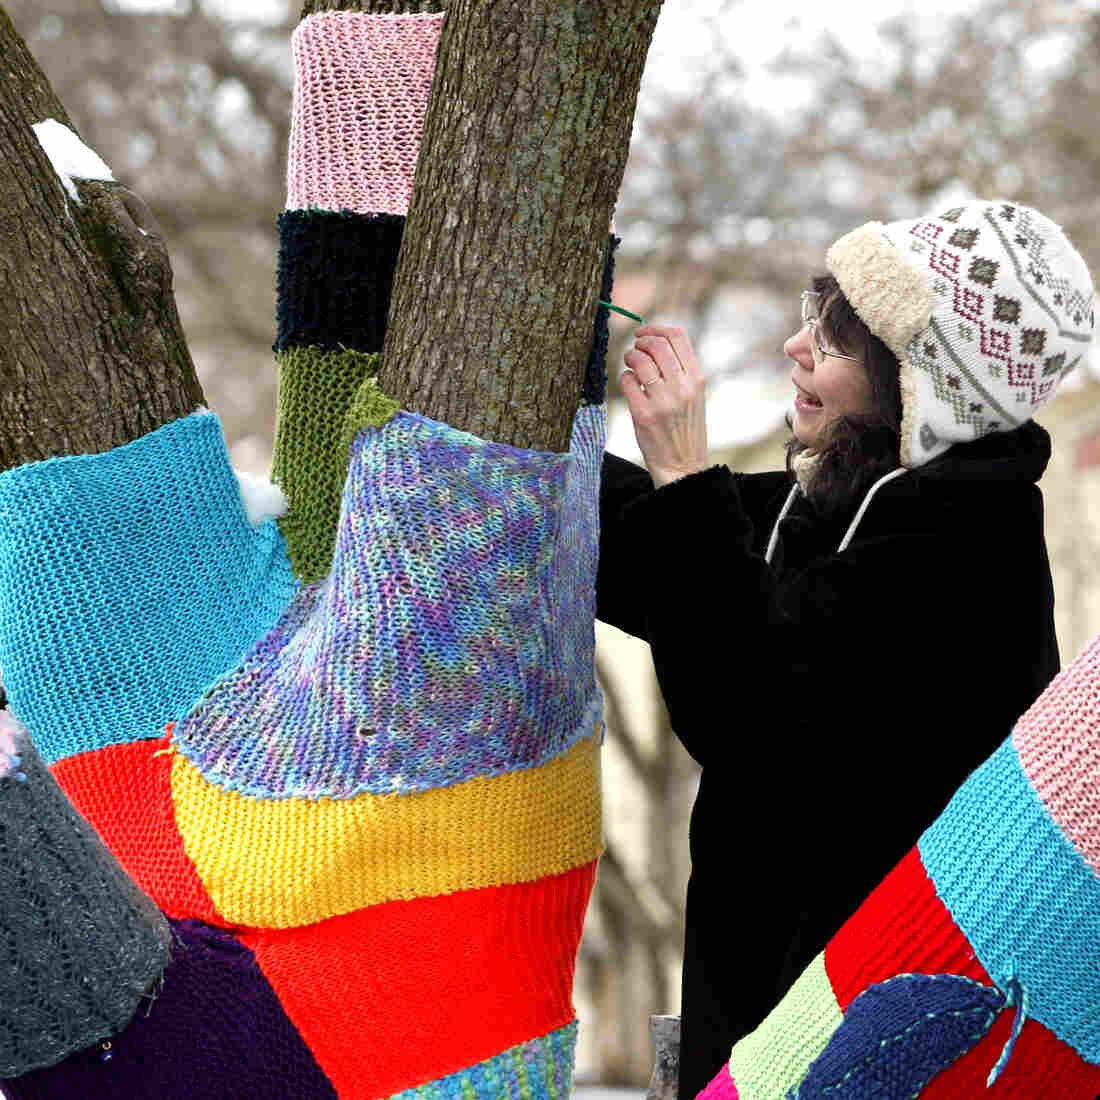 """Nancy Mellon sews another knitted section to the """"Knit Knot Tree"""" on Xenia Avenue in Yellow Springs, Ohio, in February 2008."""